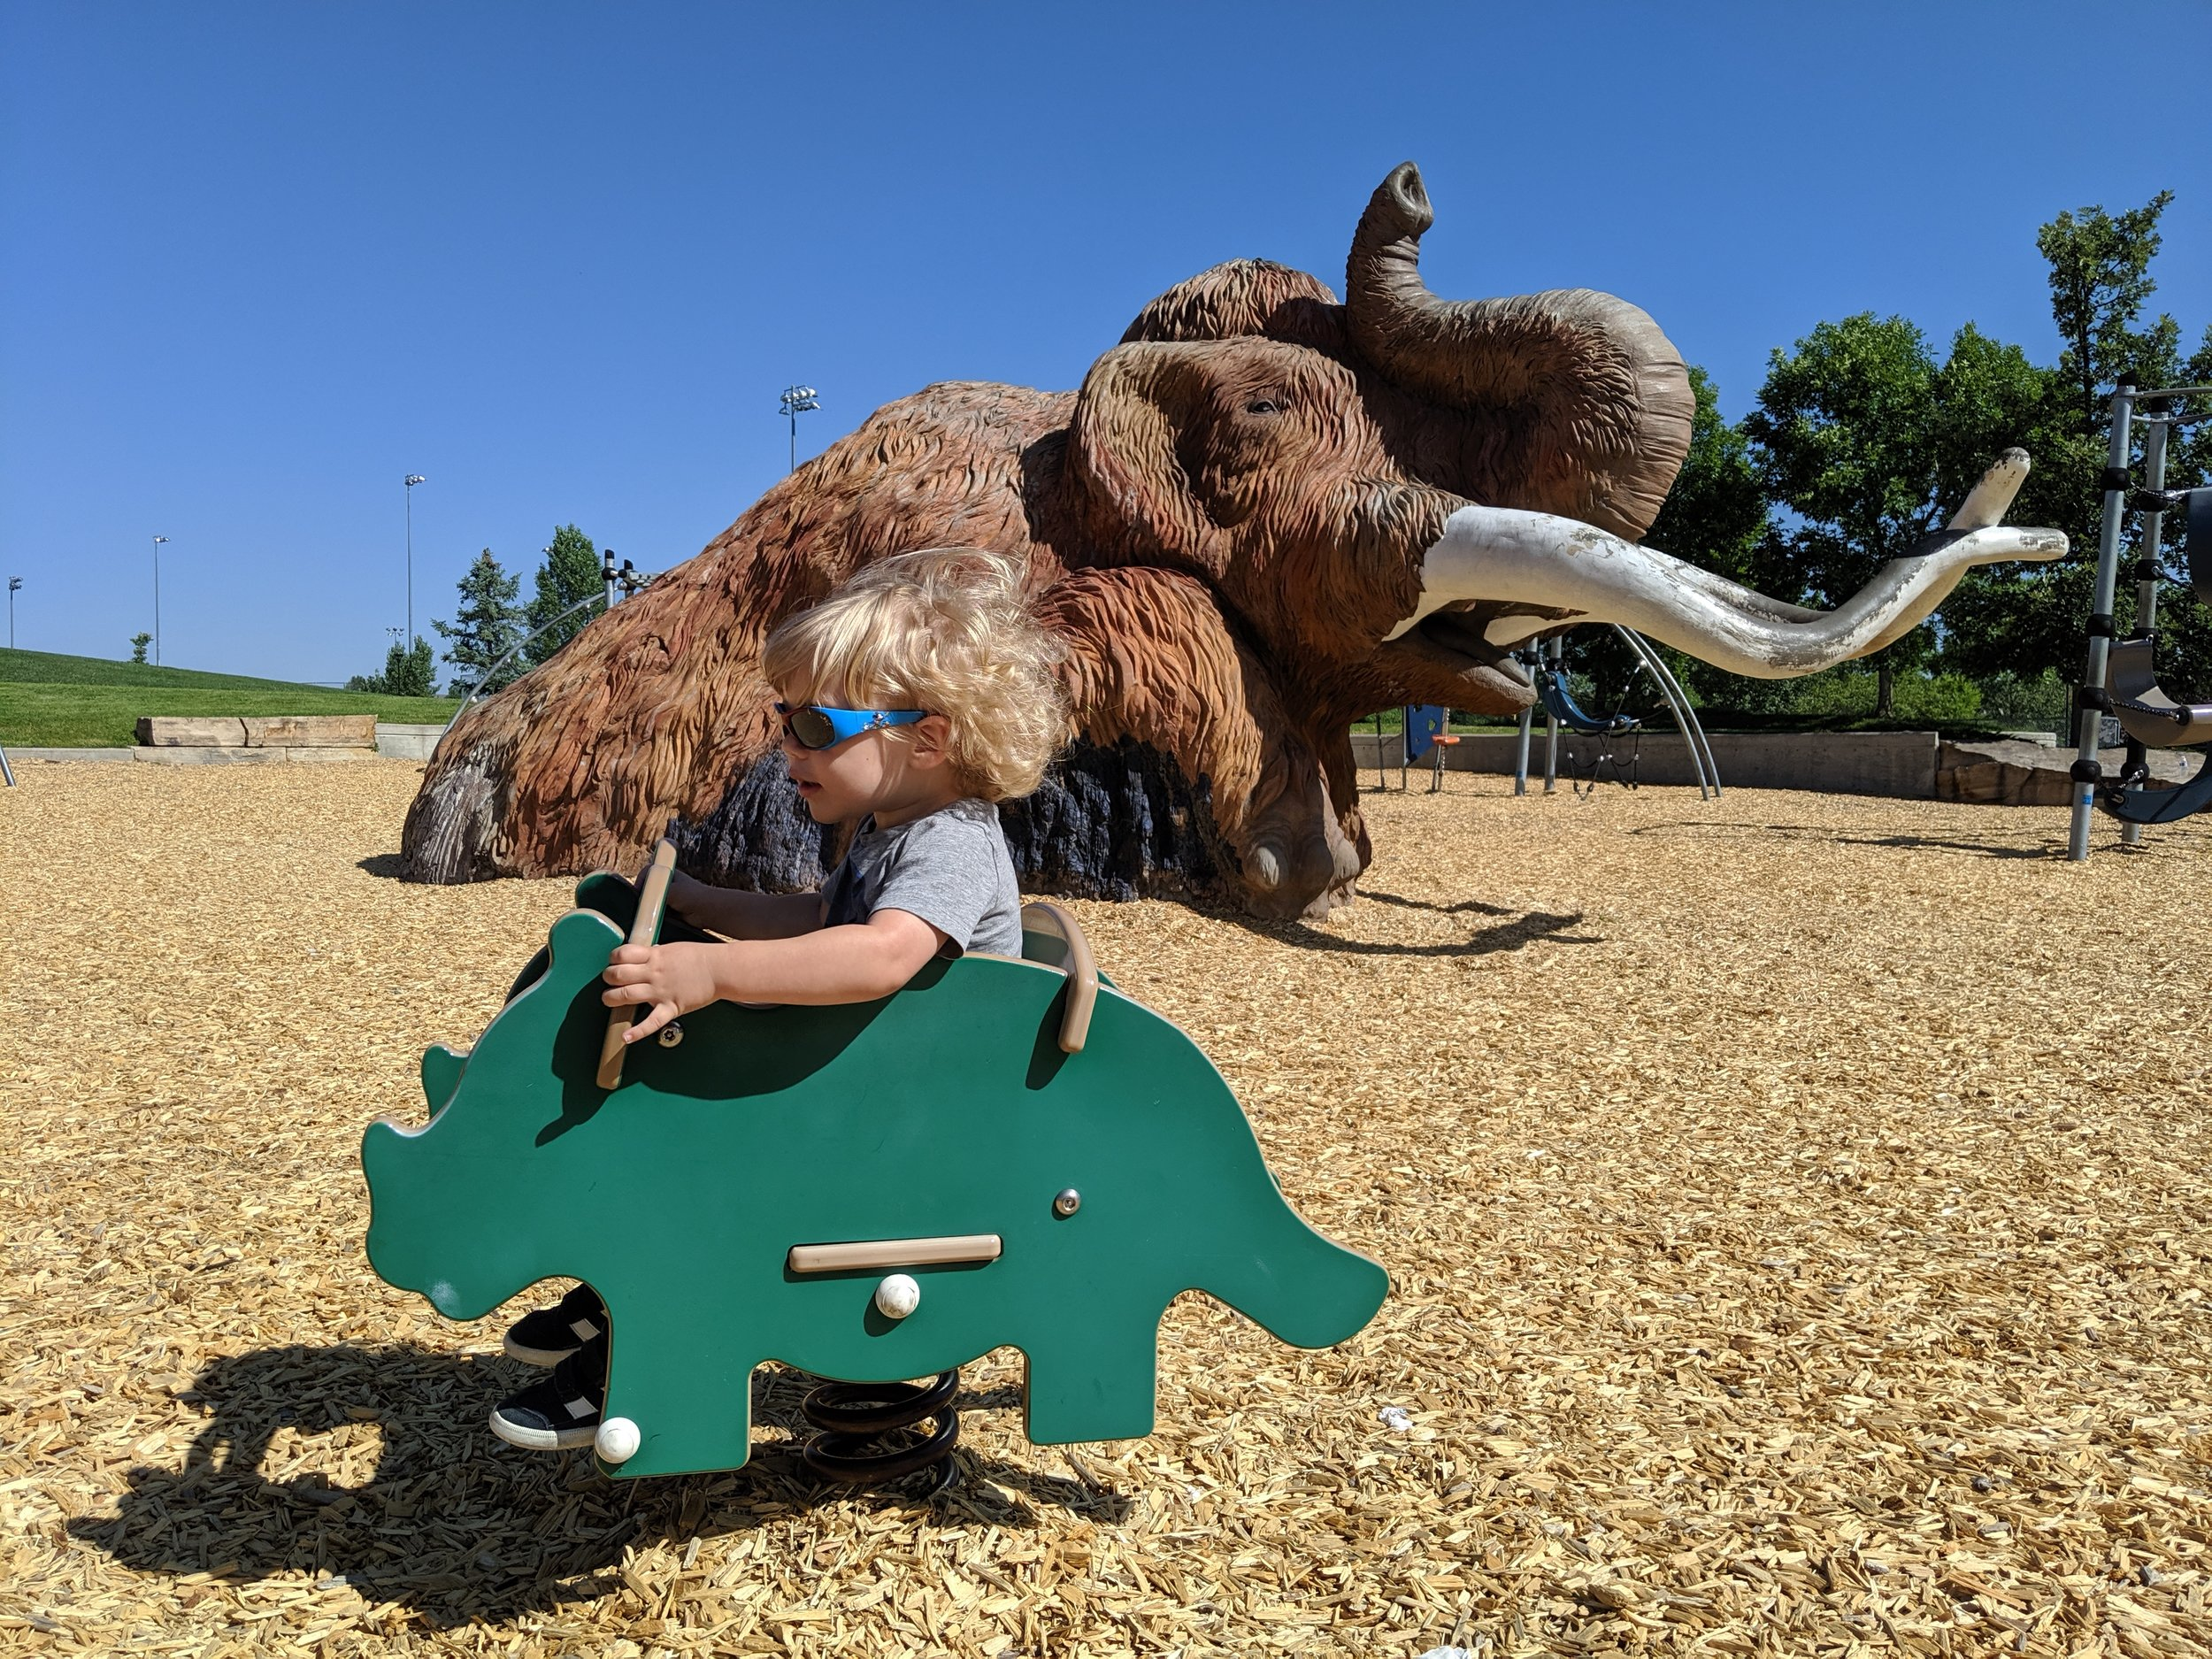 Trying out a new park in Fort Collins. This was a dinosaur themed park and it was so cool!